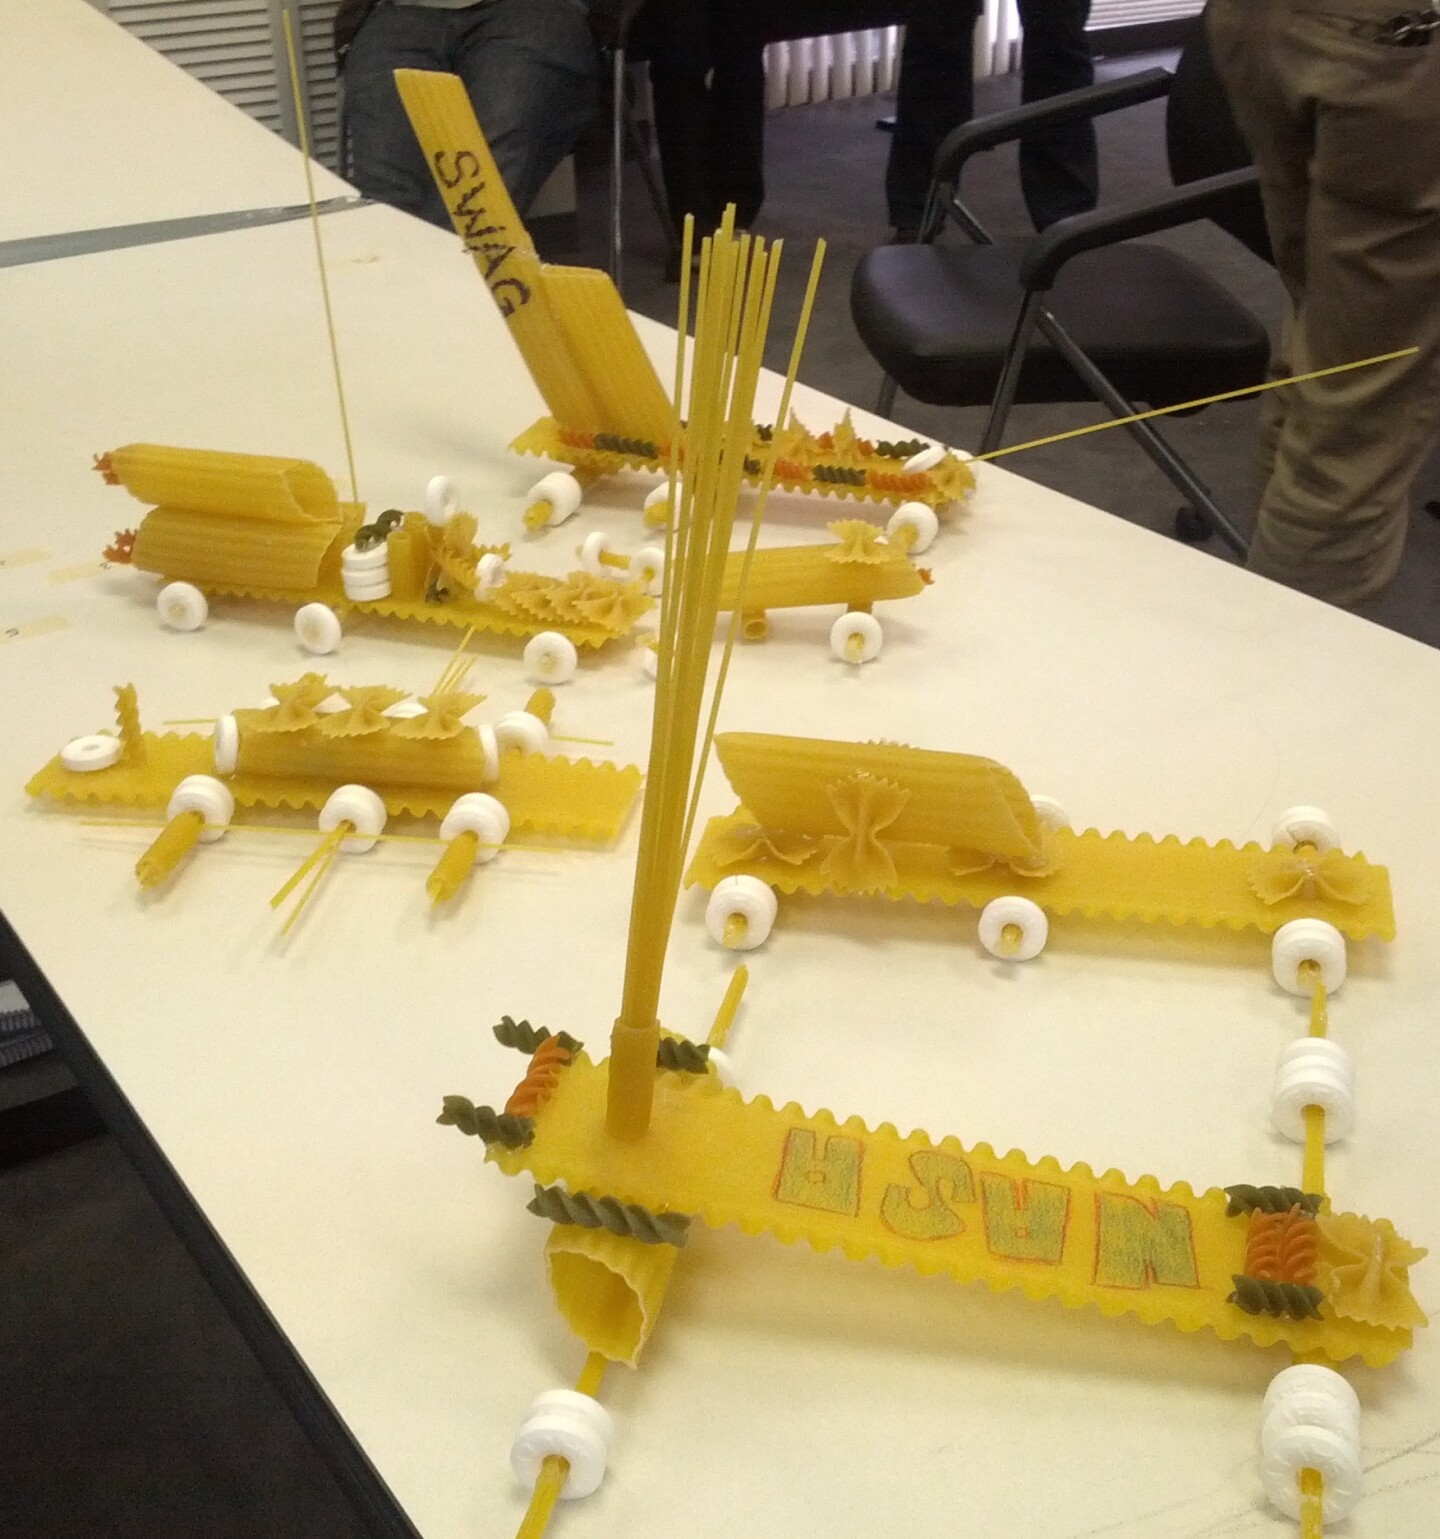 Several rovers made out of dried pasta are laid out on a table.